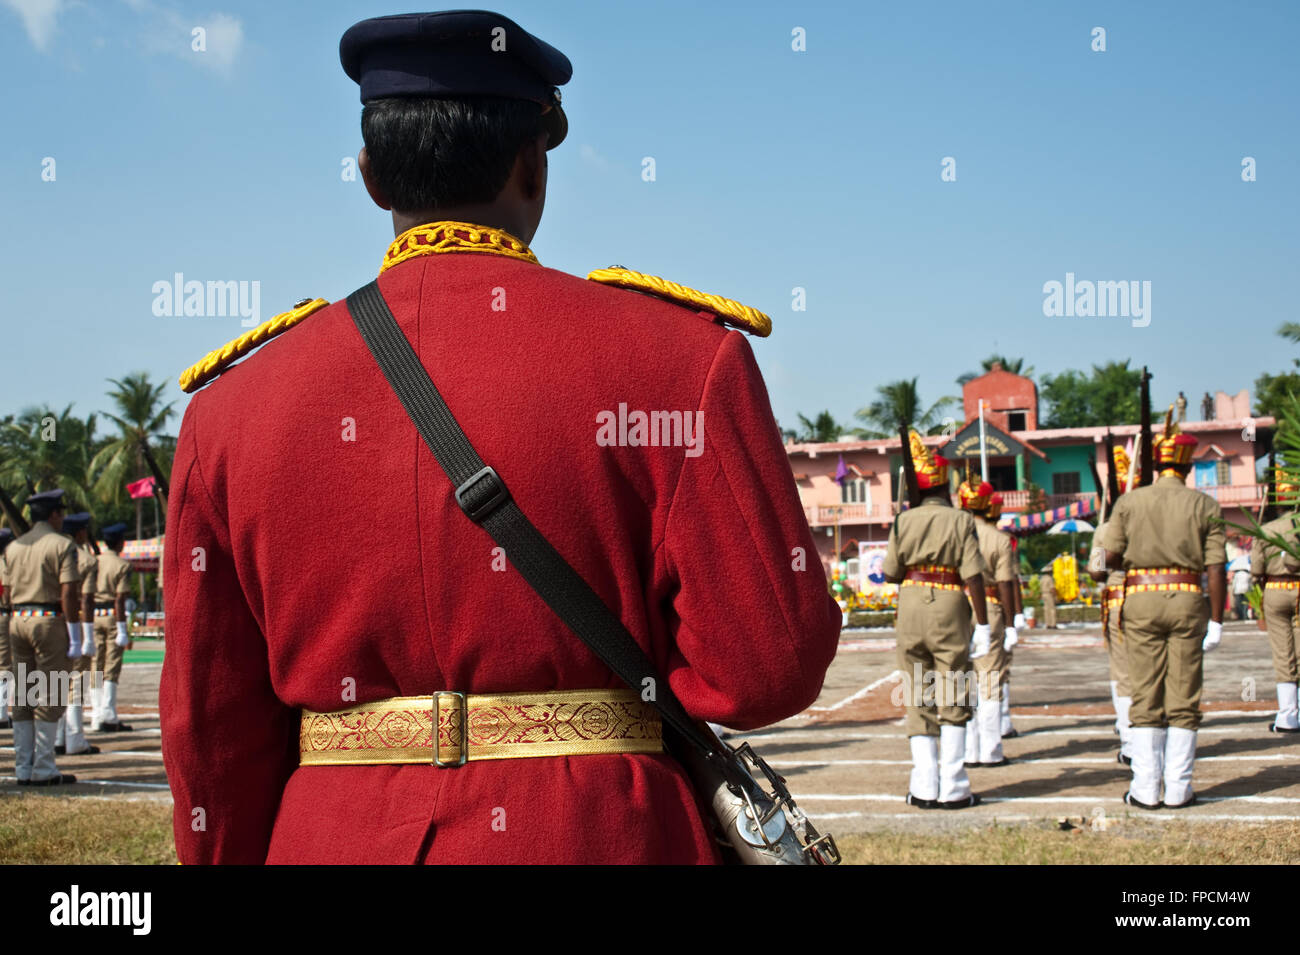 Rear view of a musician participating at the Independence Day parade. The musician belongs to a brass band ( India) - Stock Image